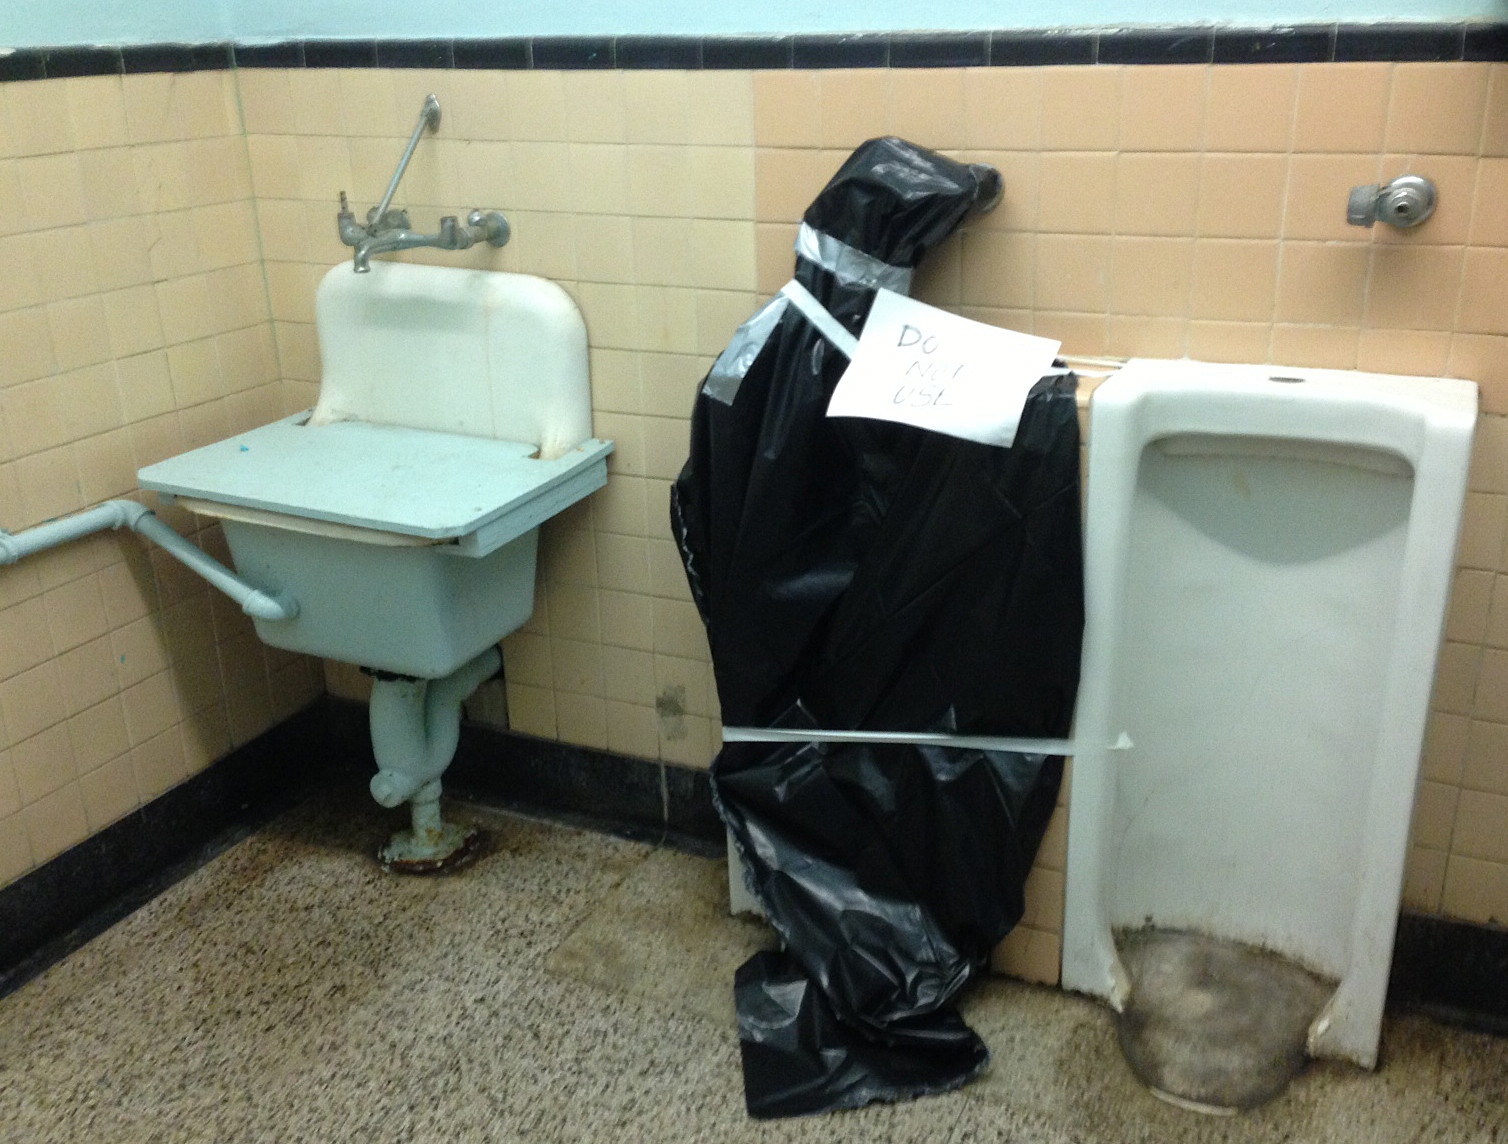 Out of Order: In the Mepham High School football locker room, the sink and urinals are broken beyond repair.